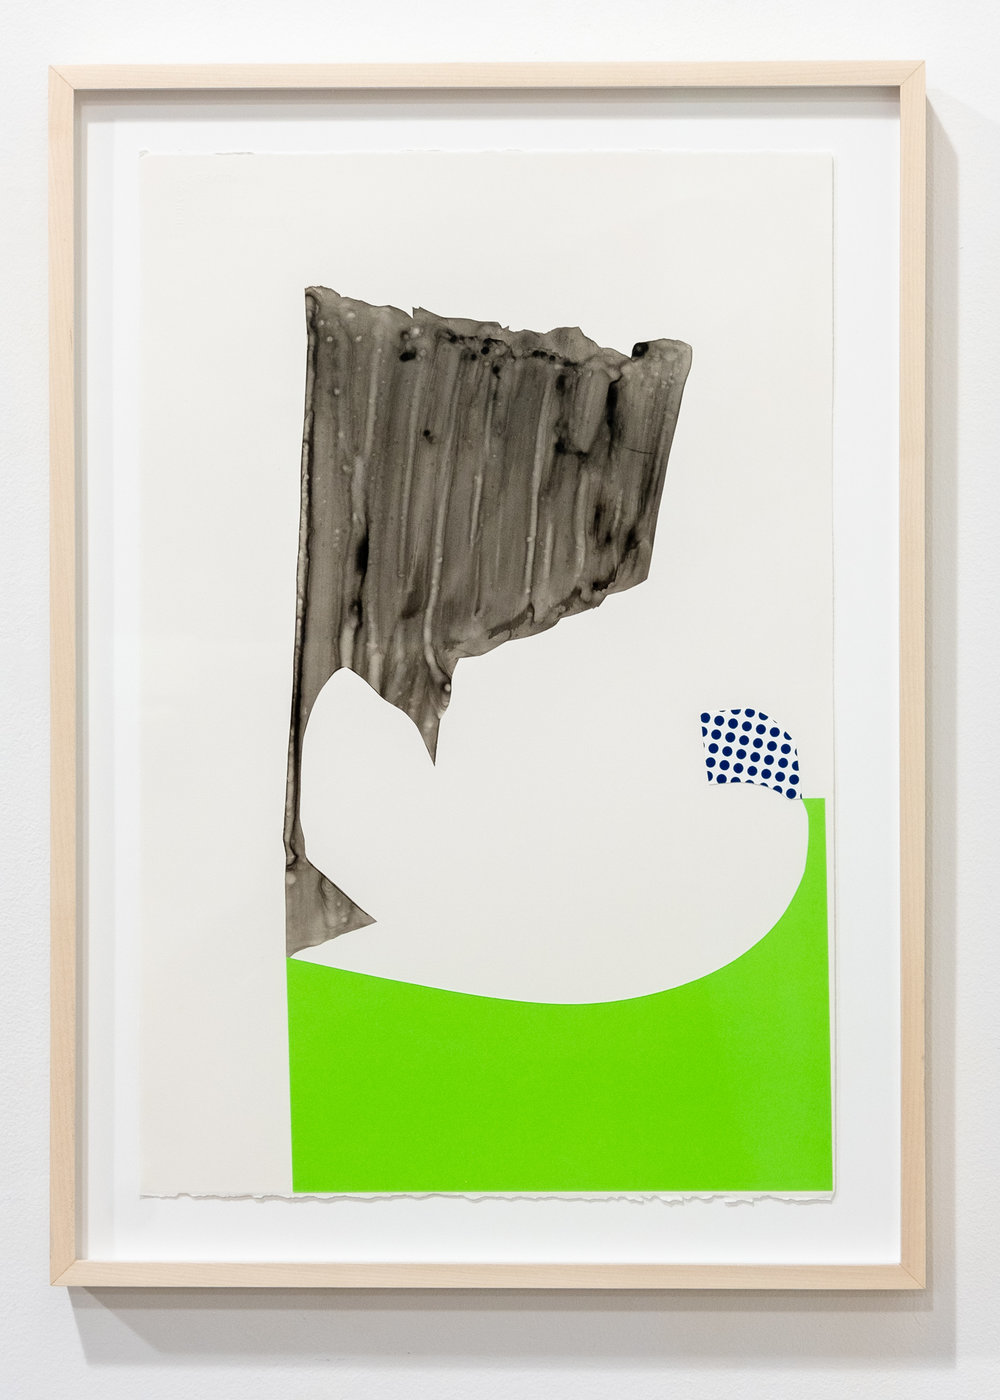 Joe Camoosa and Ry McCullough   Confluence 05   Inks, Mylar & cut paper on Arches, 22 x 15 inches JCA 064G